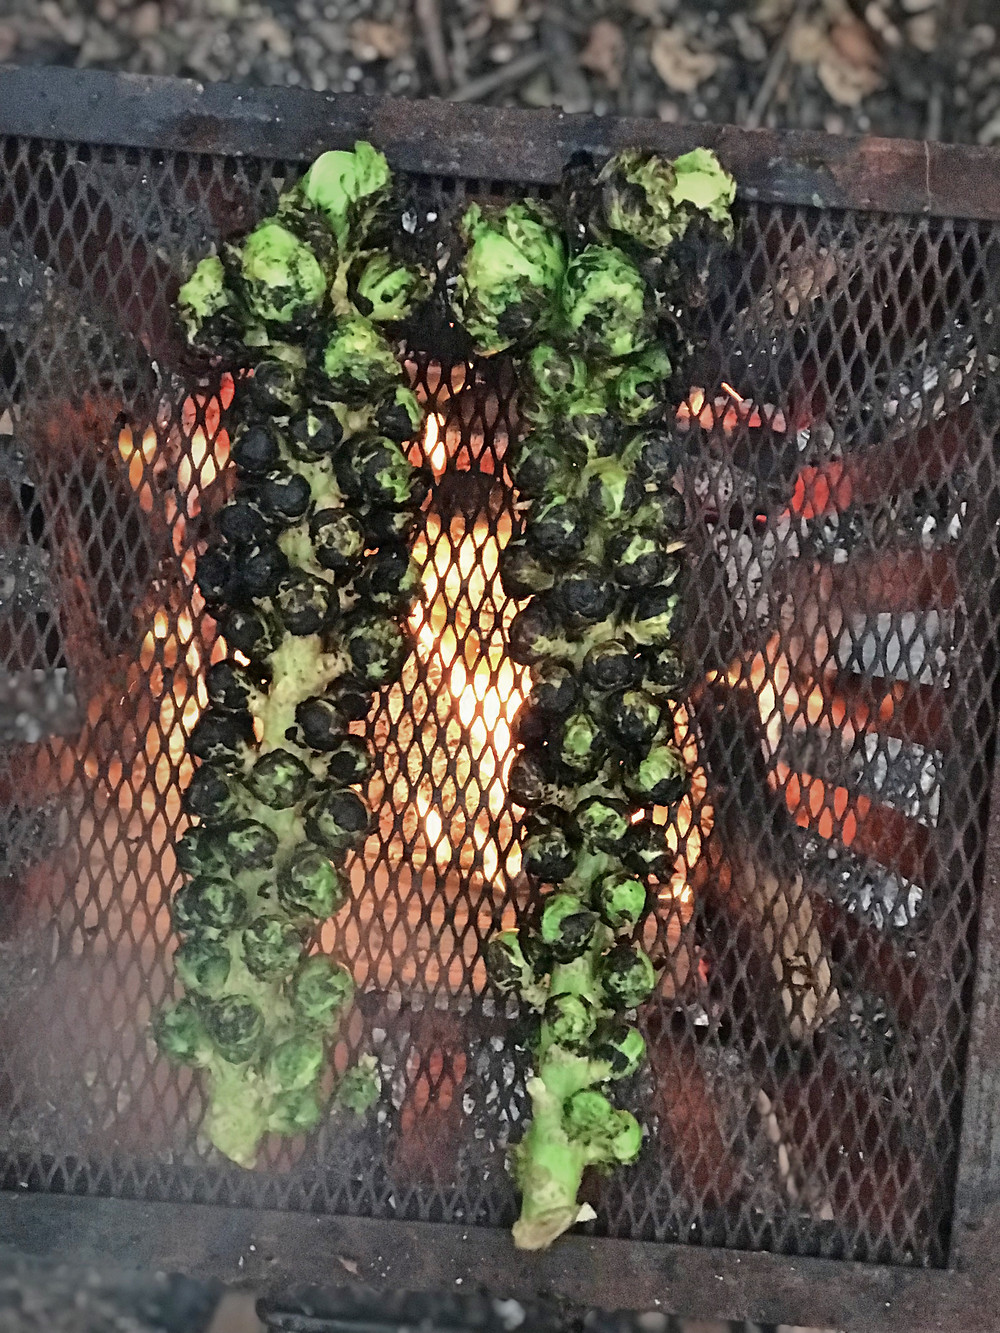 Wood grilled Brussels Sprouts over the fire.